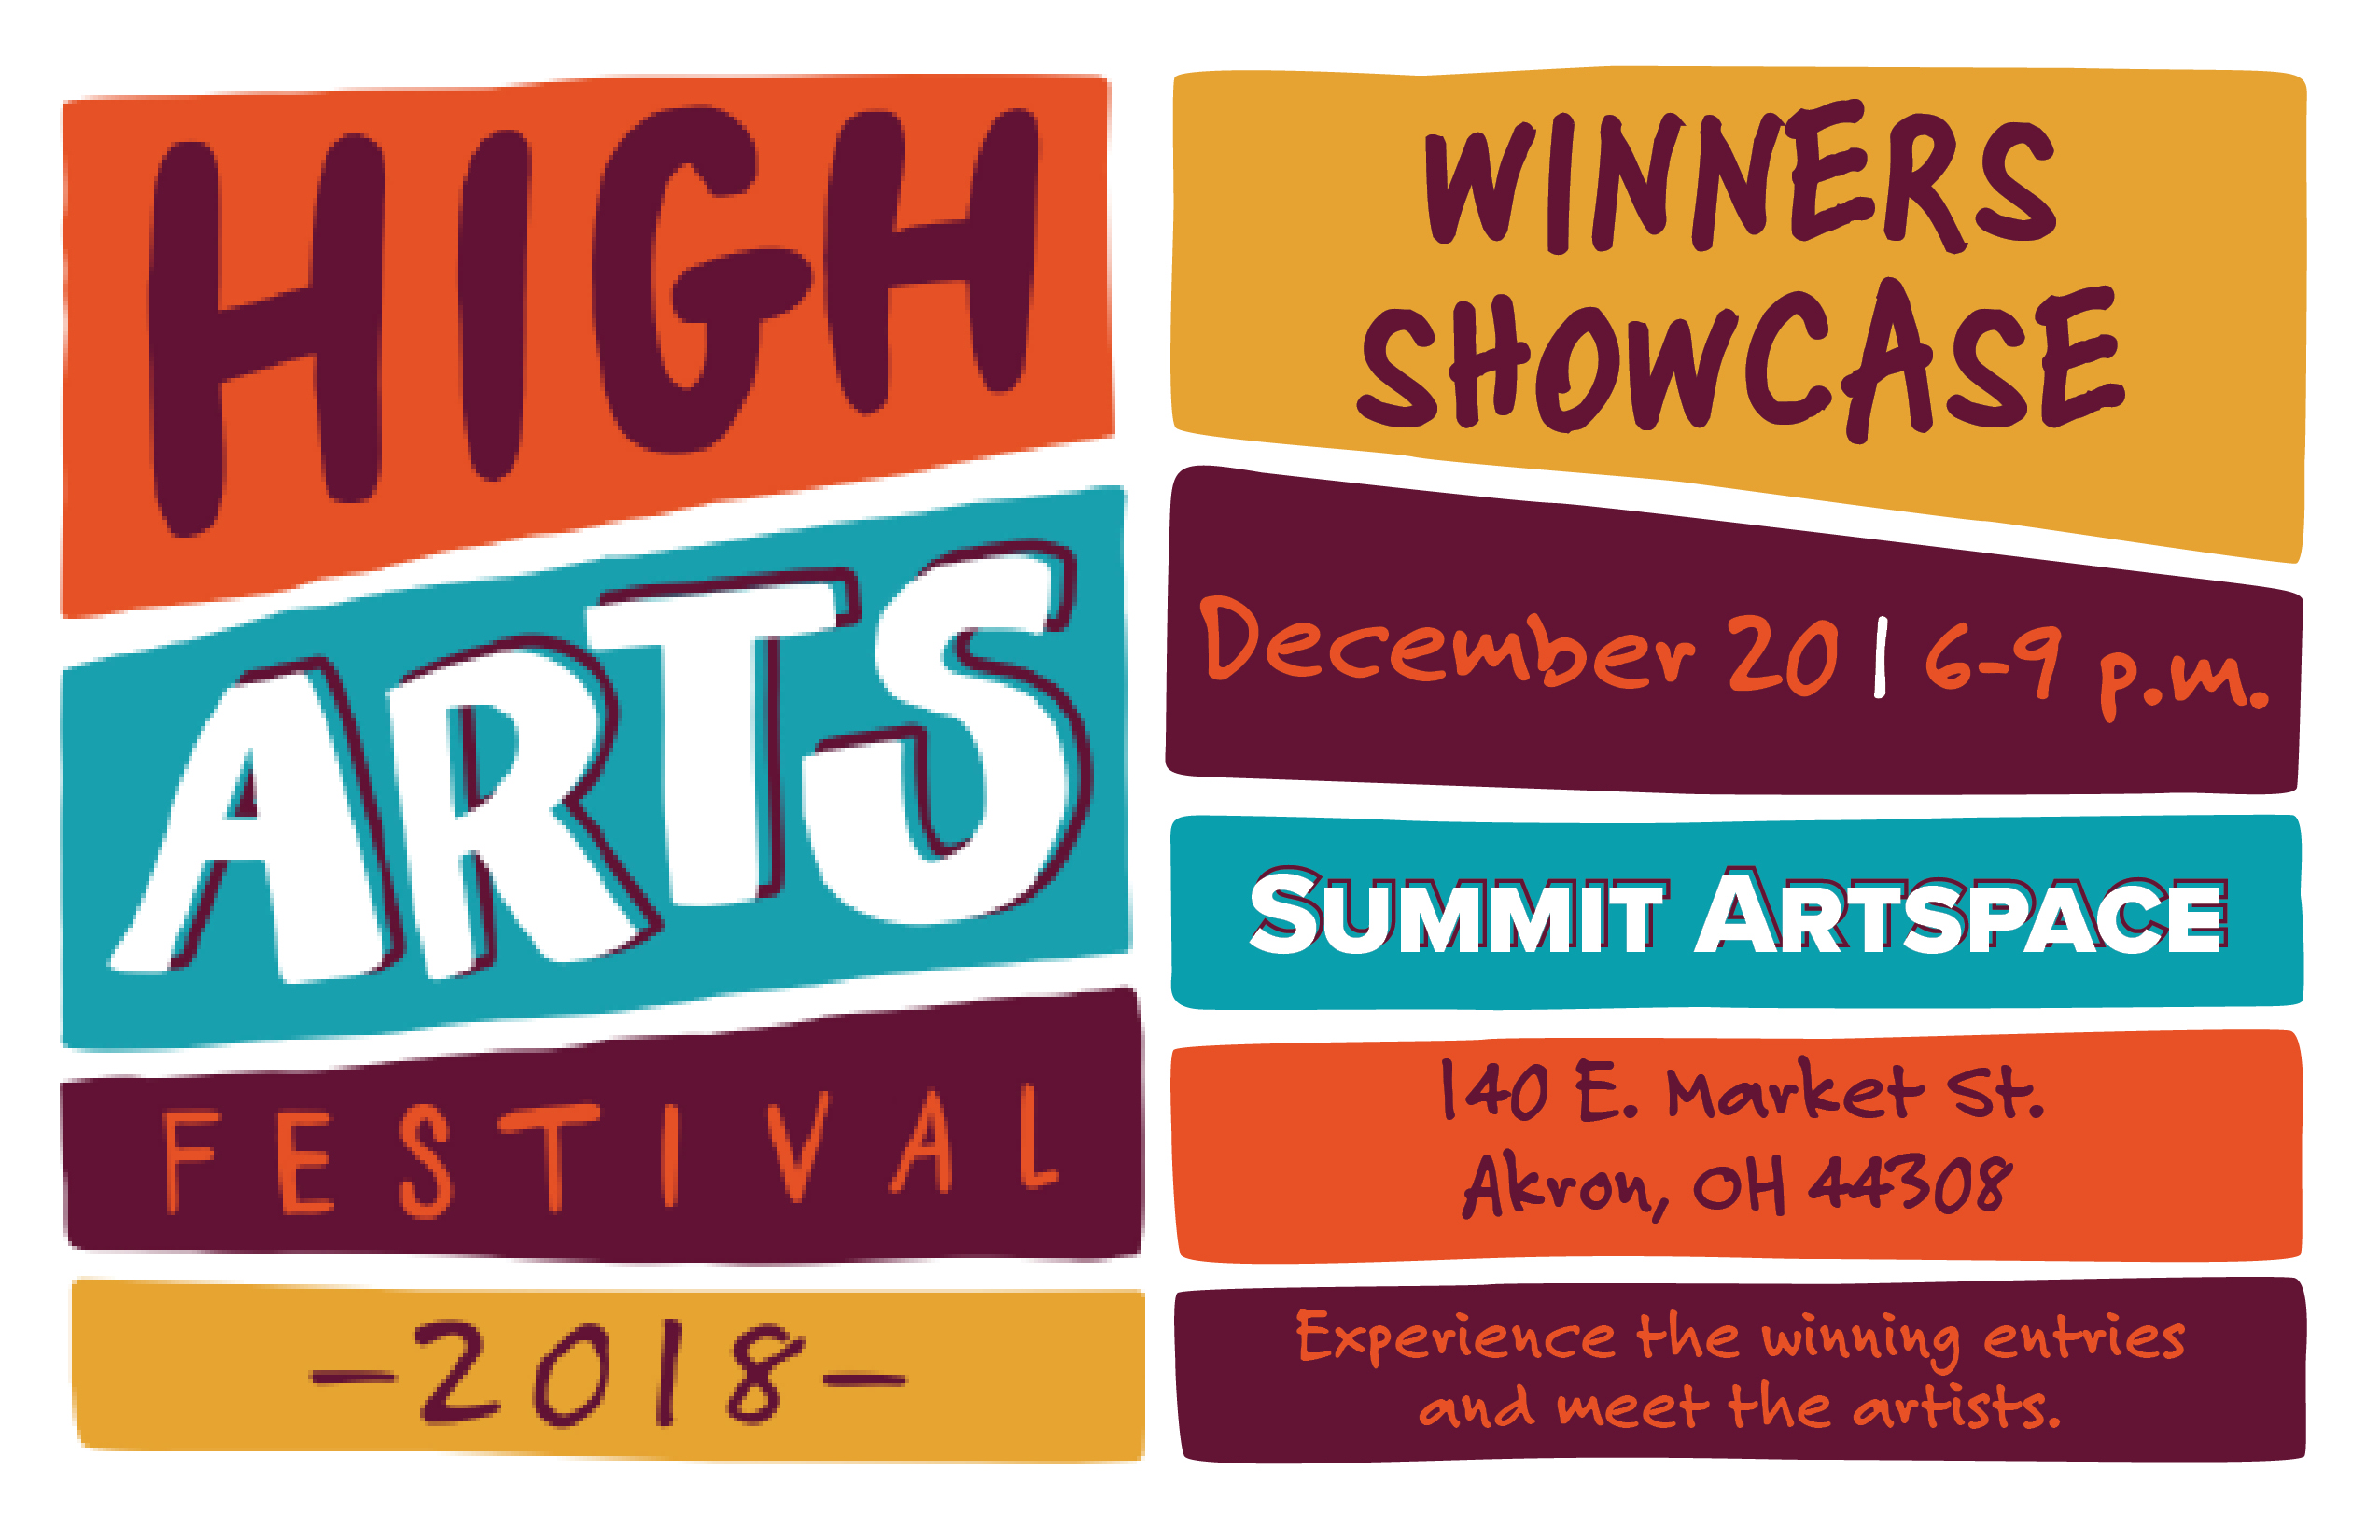 High Arts Festival Winners Showcase